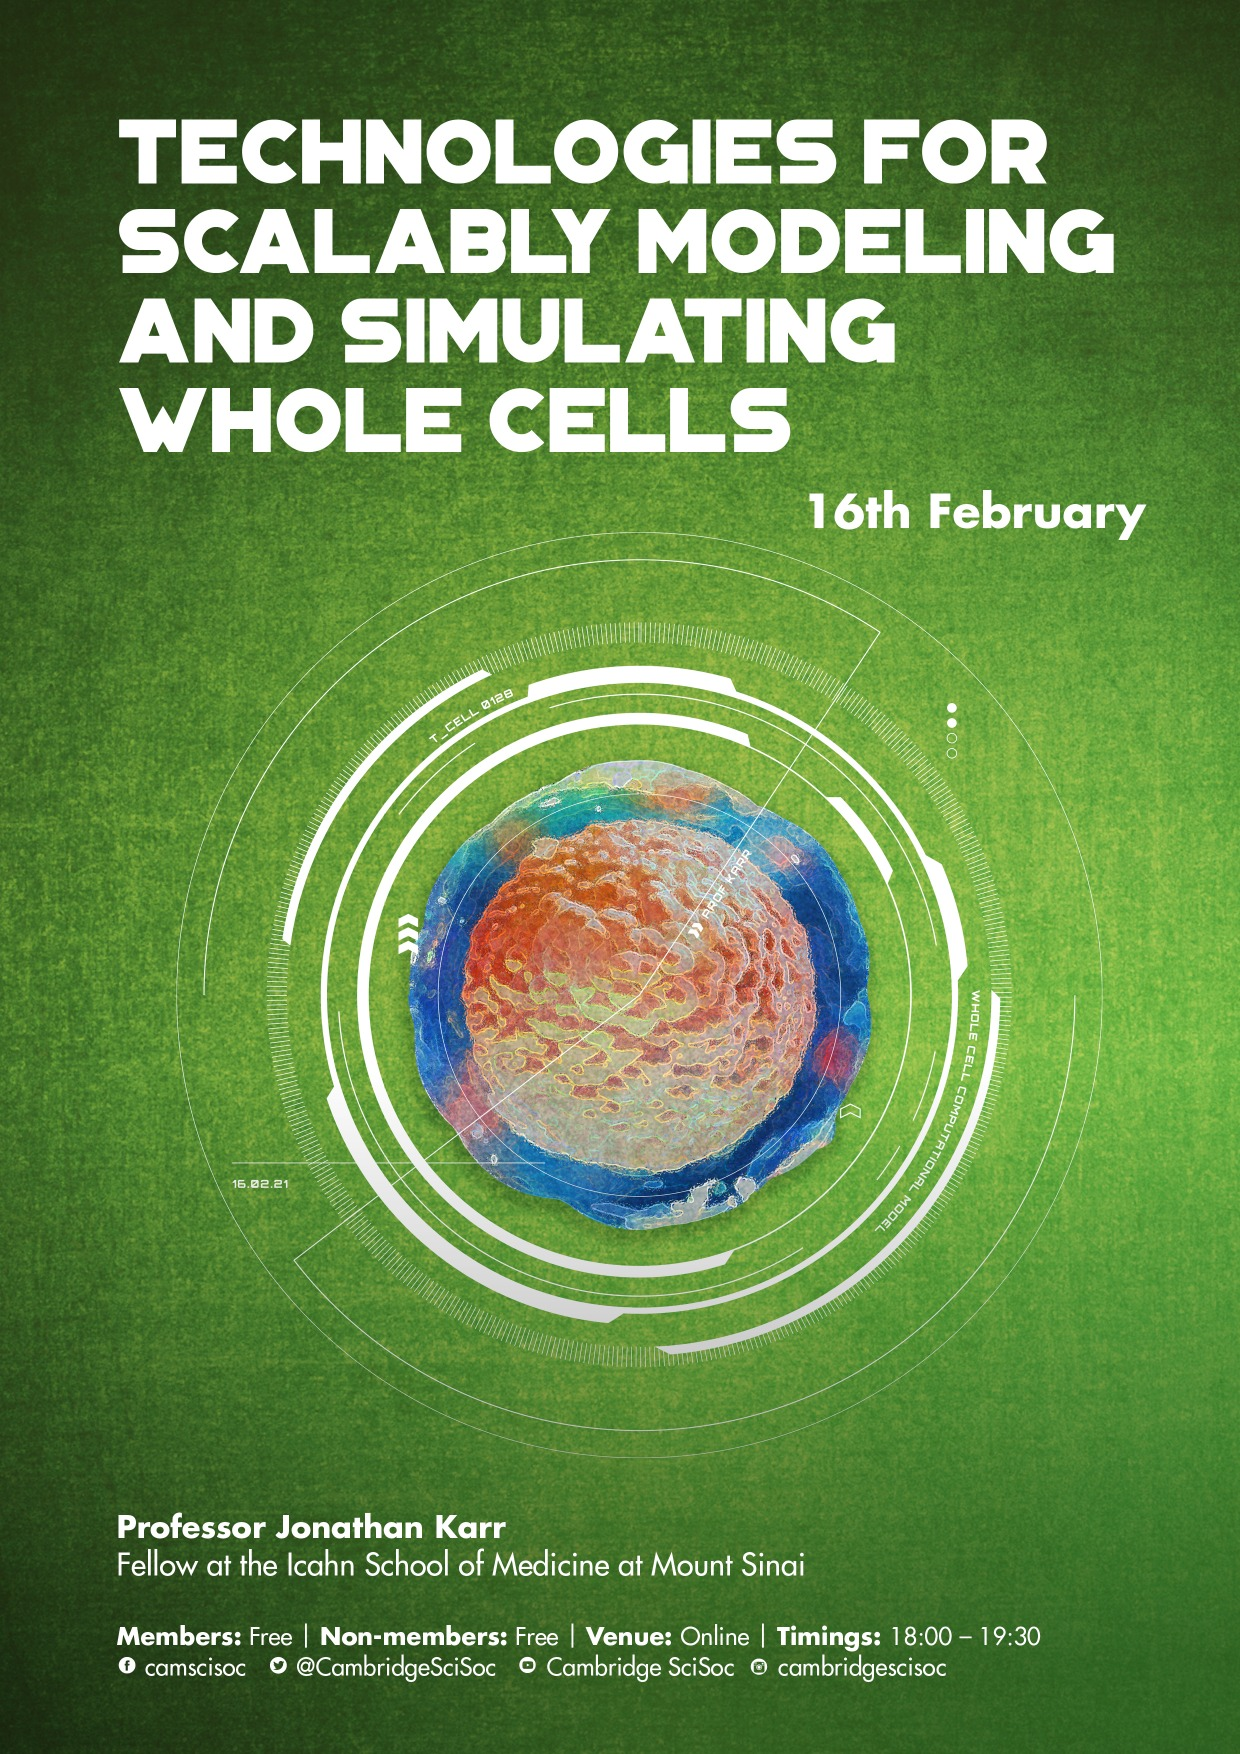 Whole-cell modelling